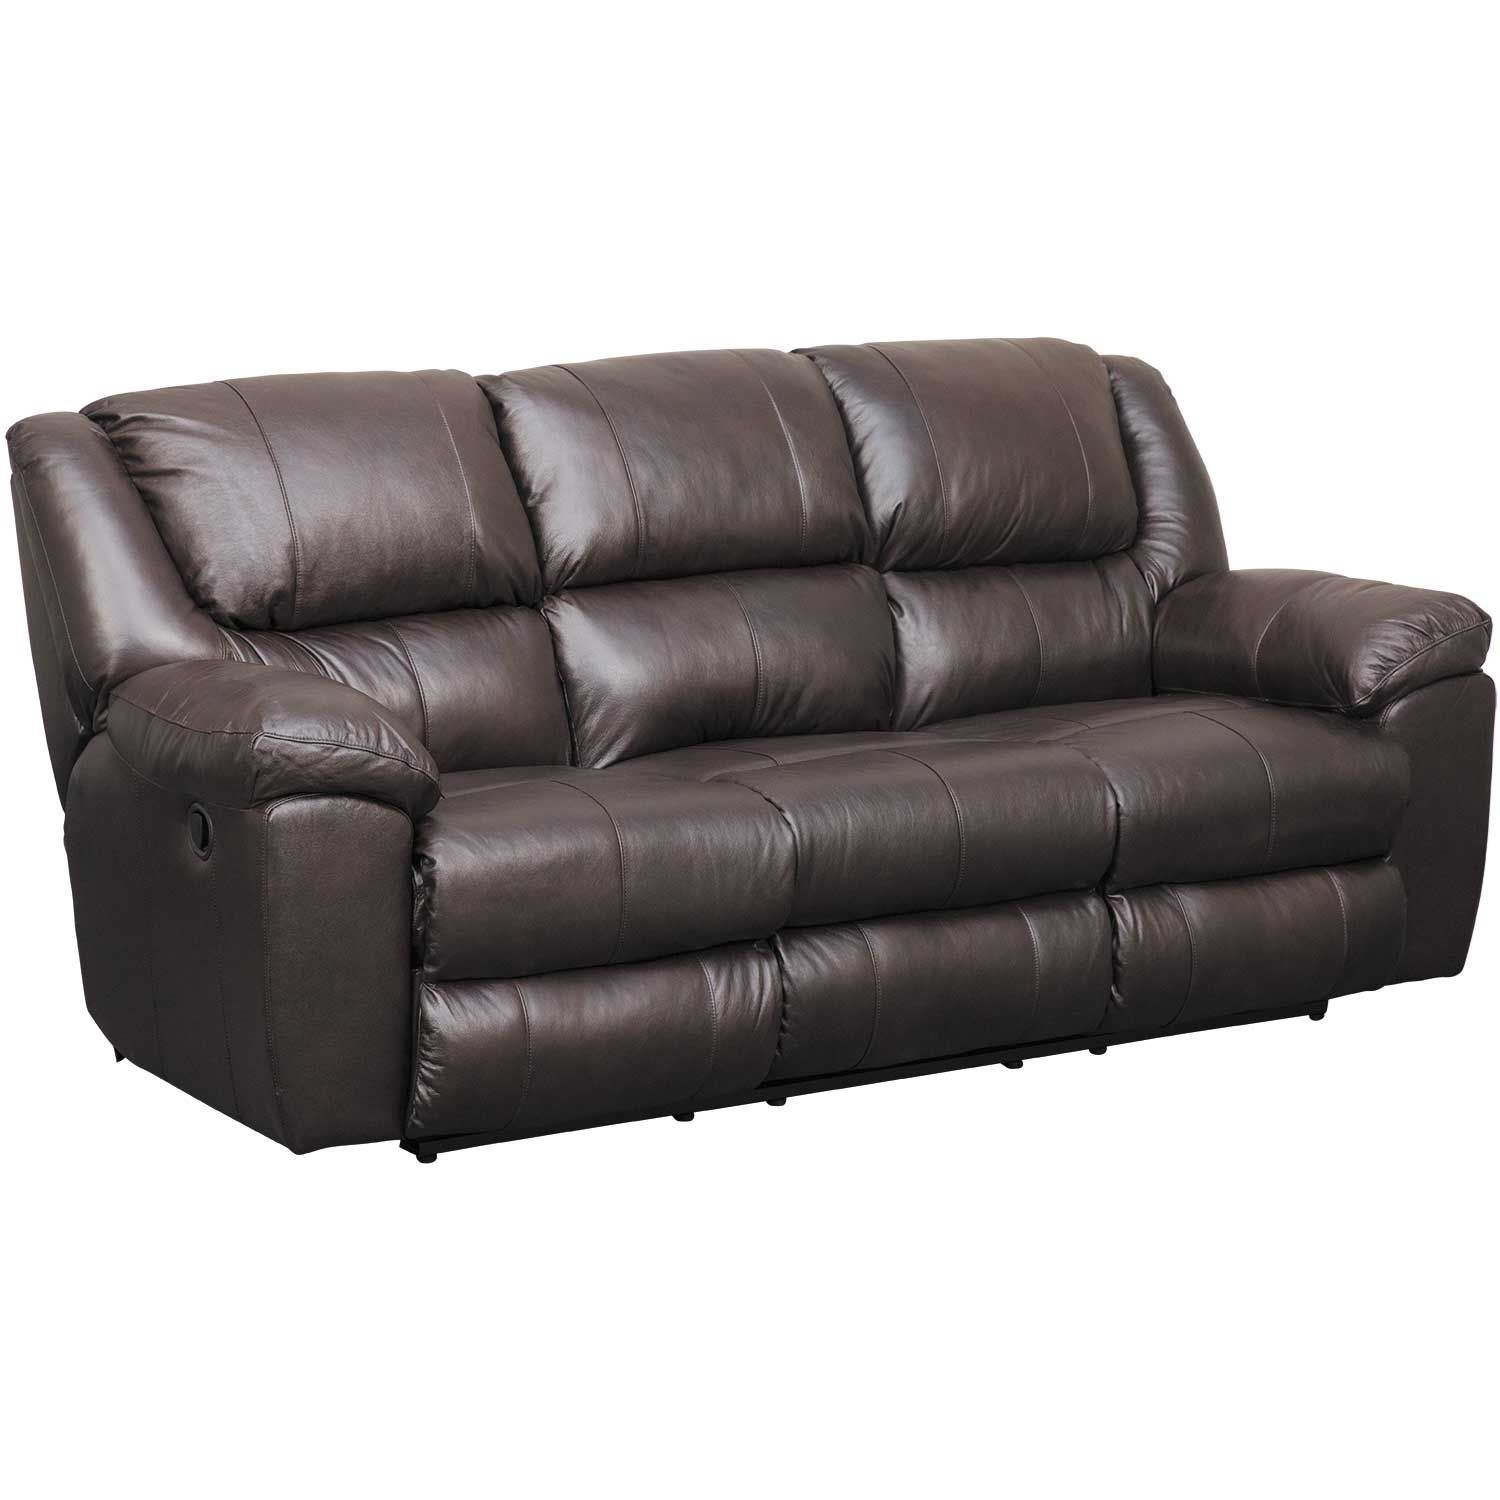 Picture of Italian Leather Triple Recline Sofa with Drop Table